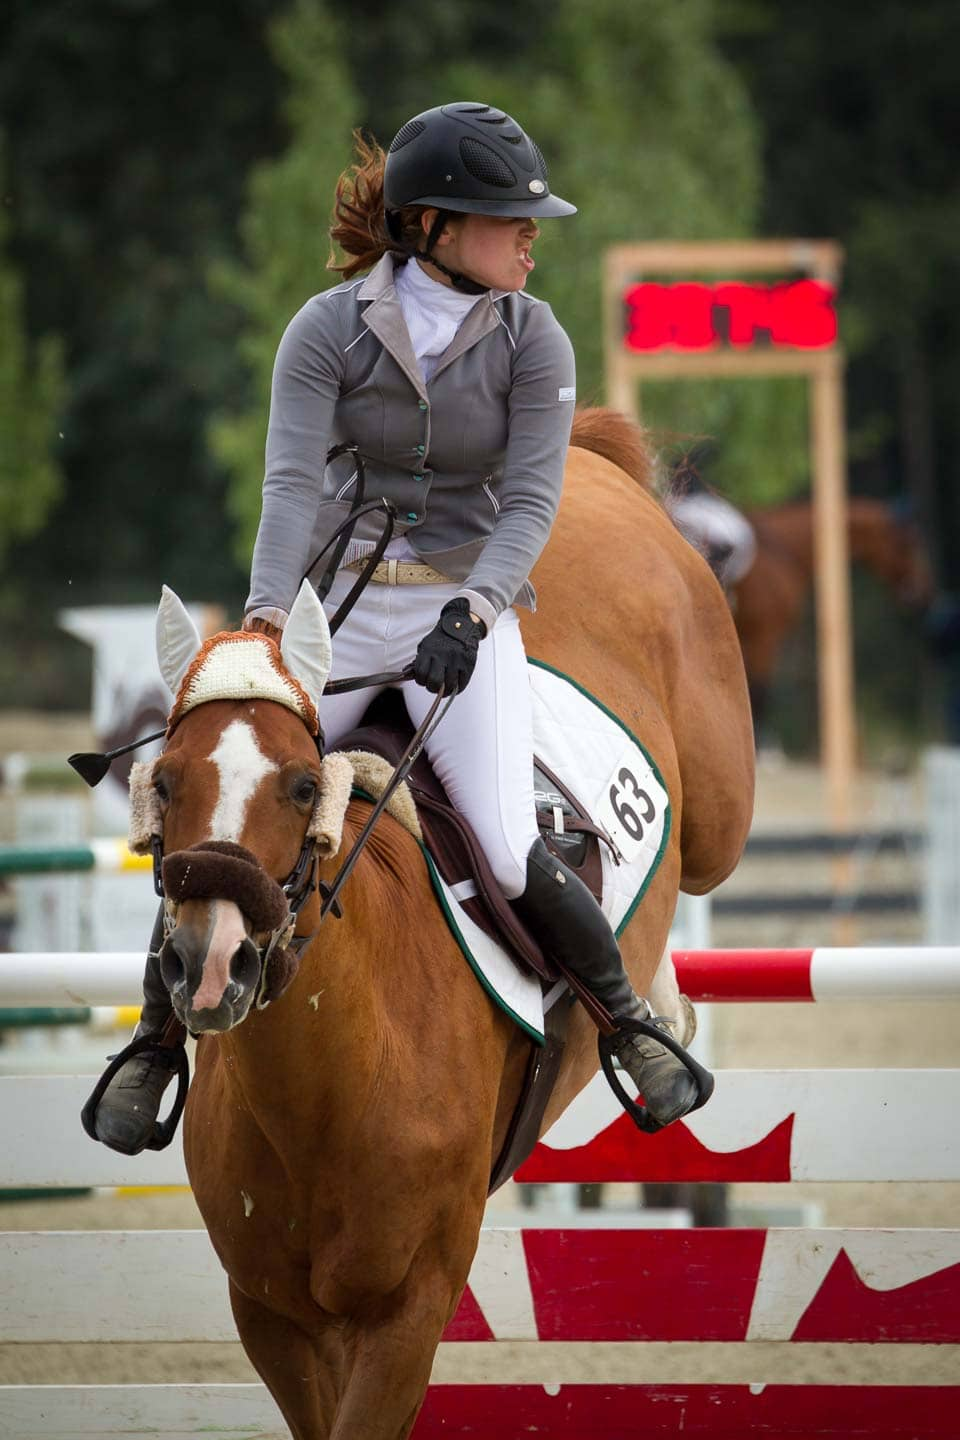 Professional female equstrian lands a big jump with timer in the background during Grand Prix competiton.